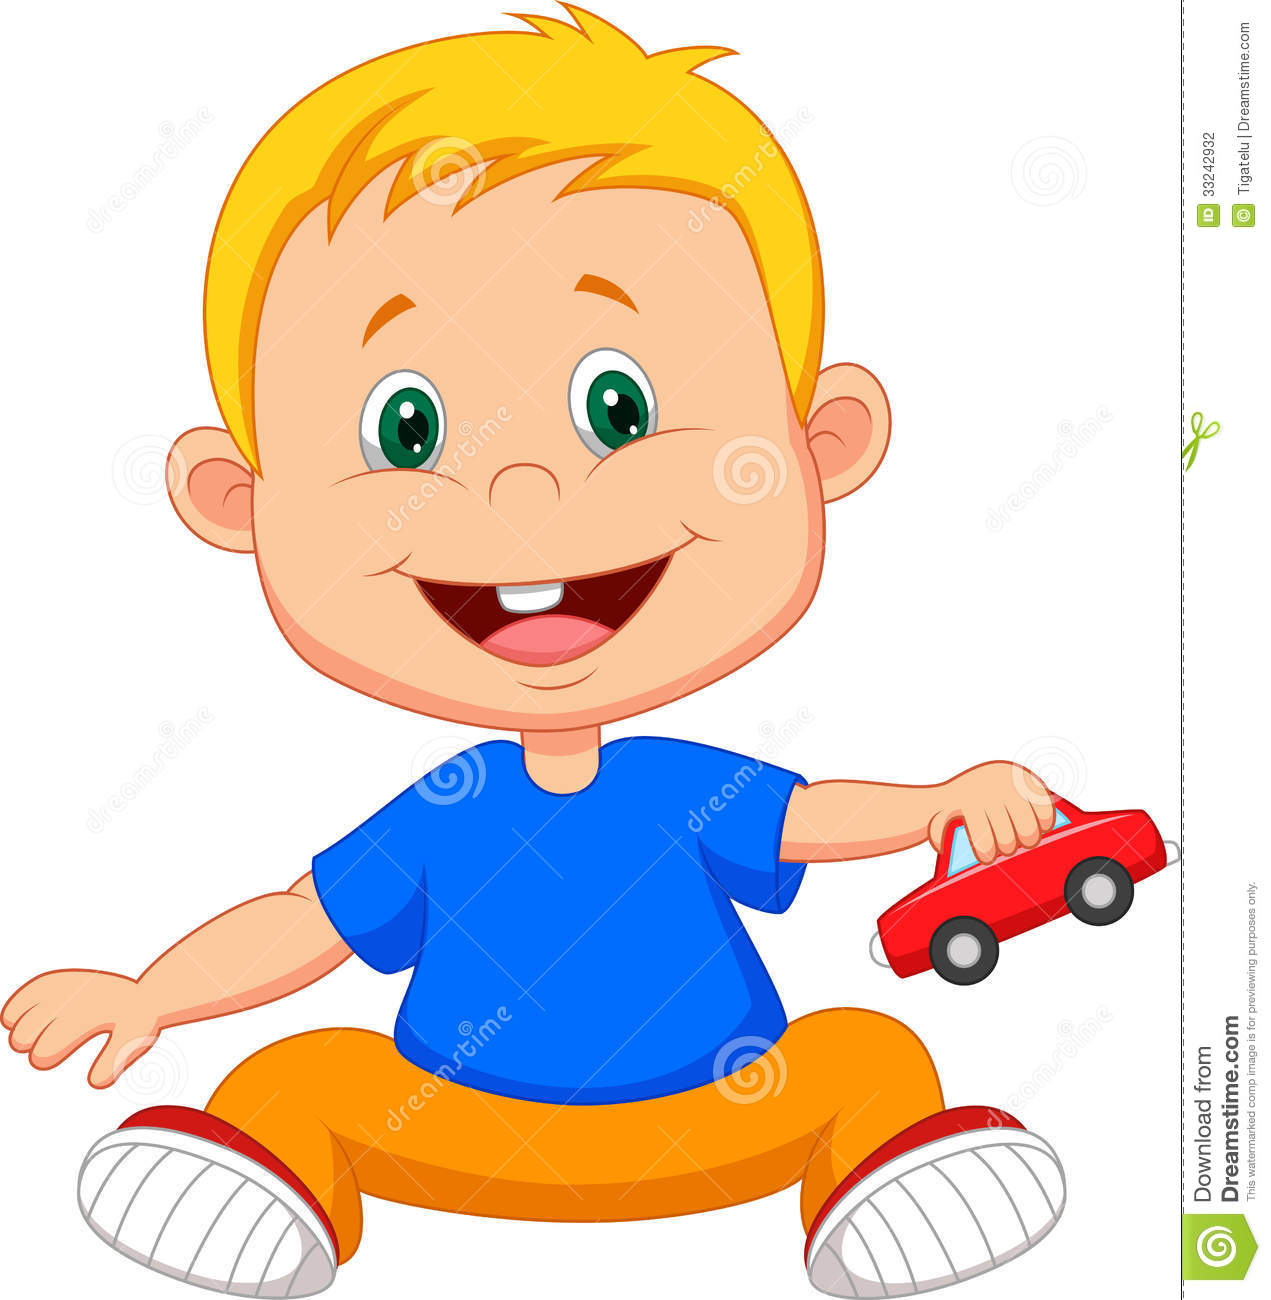 Baby cartoon playing car toy stock vector illustration of baby cartoon playing car toy voltagebd Image collections